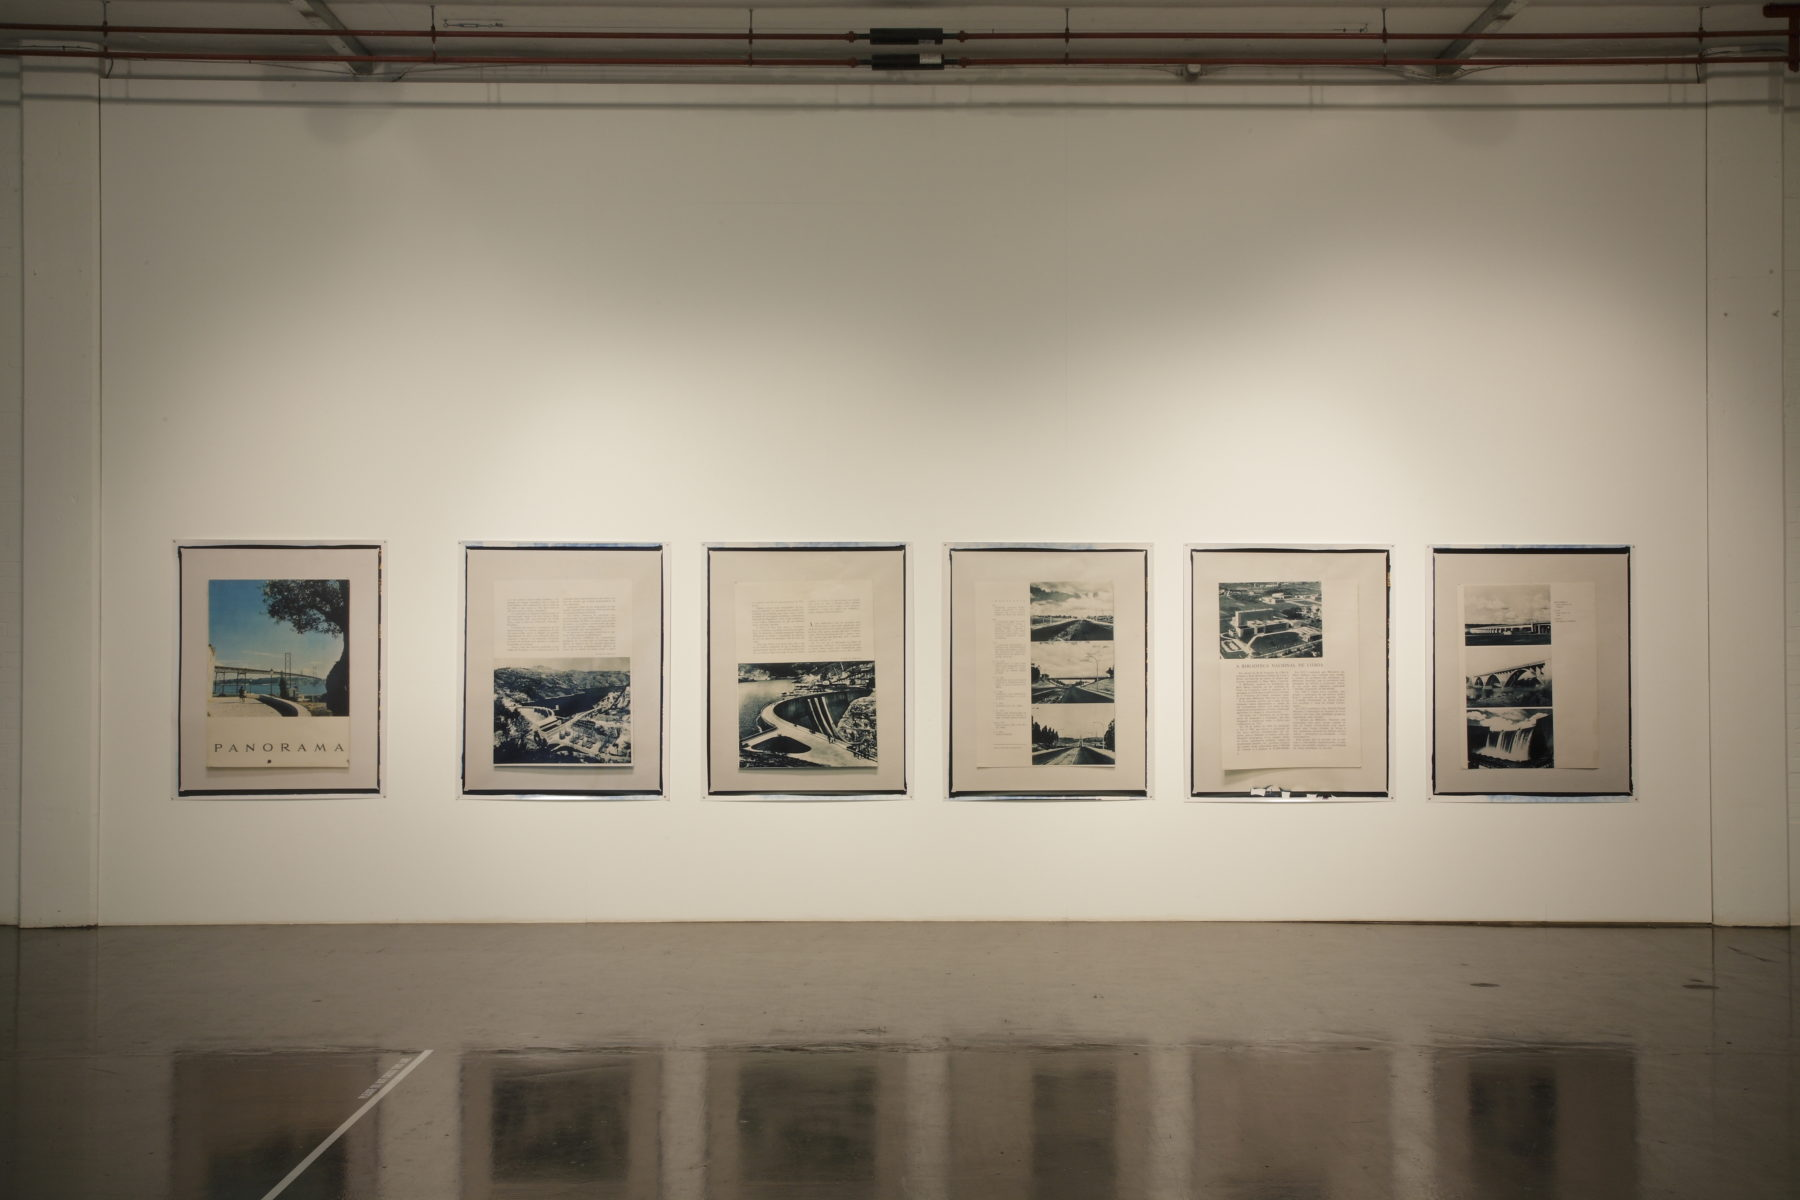 Installation view of Part-ilha, A River Ain't Too Much to Love (2011). Six framed images hang in the gallery. The images are accompanied by text that is too far away to read.